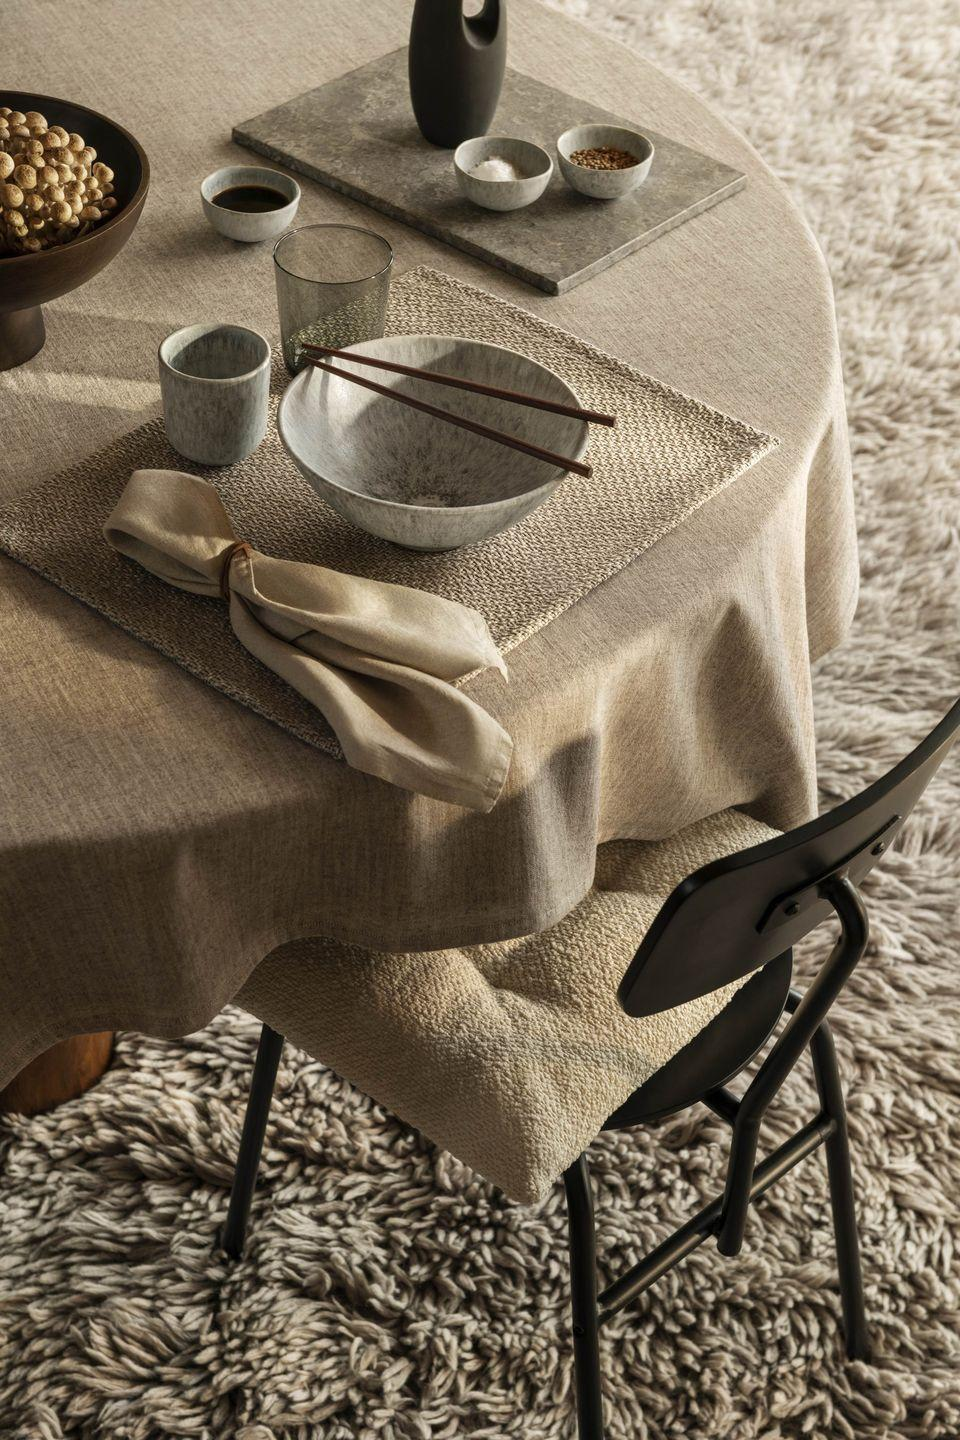 """<p>Dinner parties are back on and, as we head indoors after summer alfresco dining, adding texture to our tables, rather than colour, is an enchanting way to create an understated, but gorgeous, setting. </p><p><a class=""""link rapid-noclick-resp"""" href=""""https://go.redirectingat.com?id=127X1599956&url=https%3A%2F%2Fwww2.hm.com%2Fen_gb%2Fhome%2Fshop-by-product%2Fserving-dining.html&sref=https%3A%2F%2Fwww.prima.co.uk%2Fhome-ideas%2Fhome-accessories-buys%2Fg37325647%2Fhandm-home-autumn-collection%2F"""" rel=""""nofollow noopener"""" target=""""_blank"""" data-ylk=""""slk:Shop more tableware at H&M"""">Shop more tableware at H&M </a></p>"""